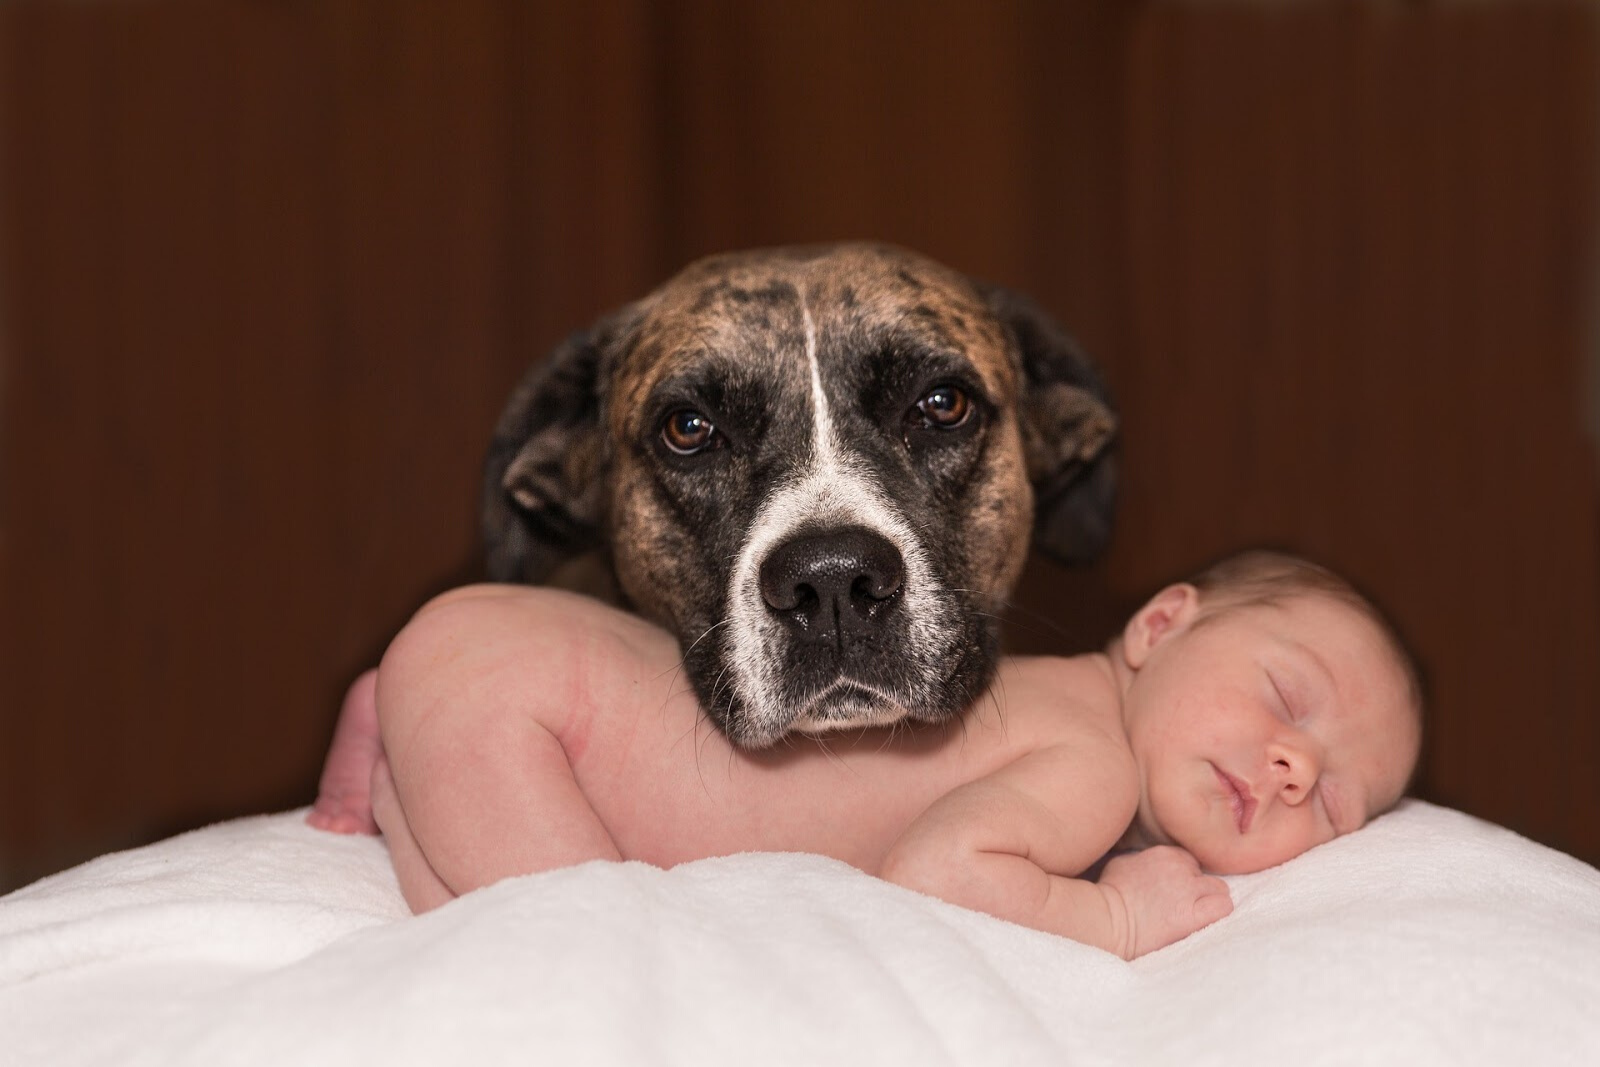 Baby and Dog   New Baby & Your Dog: What To Expect When These Two Meet